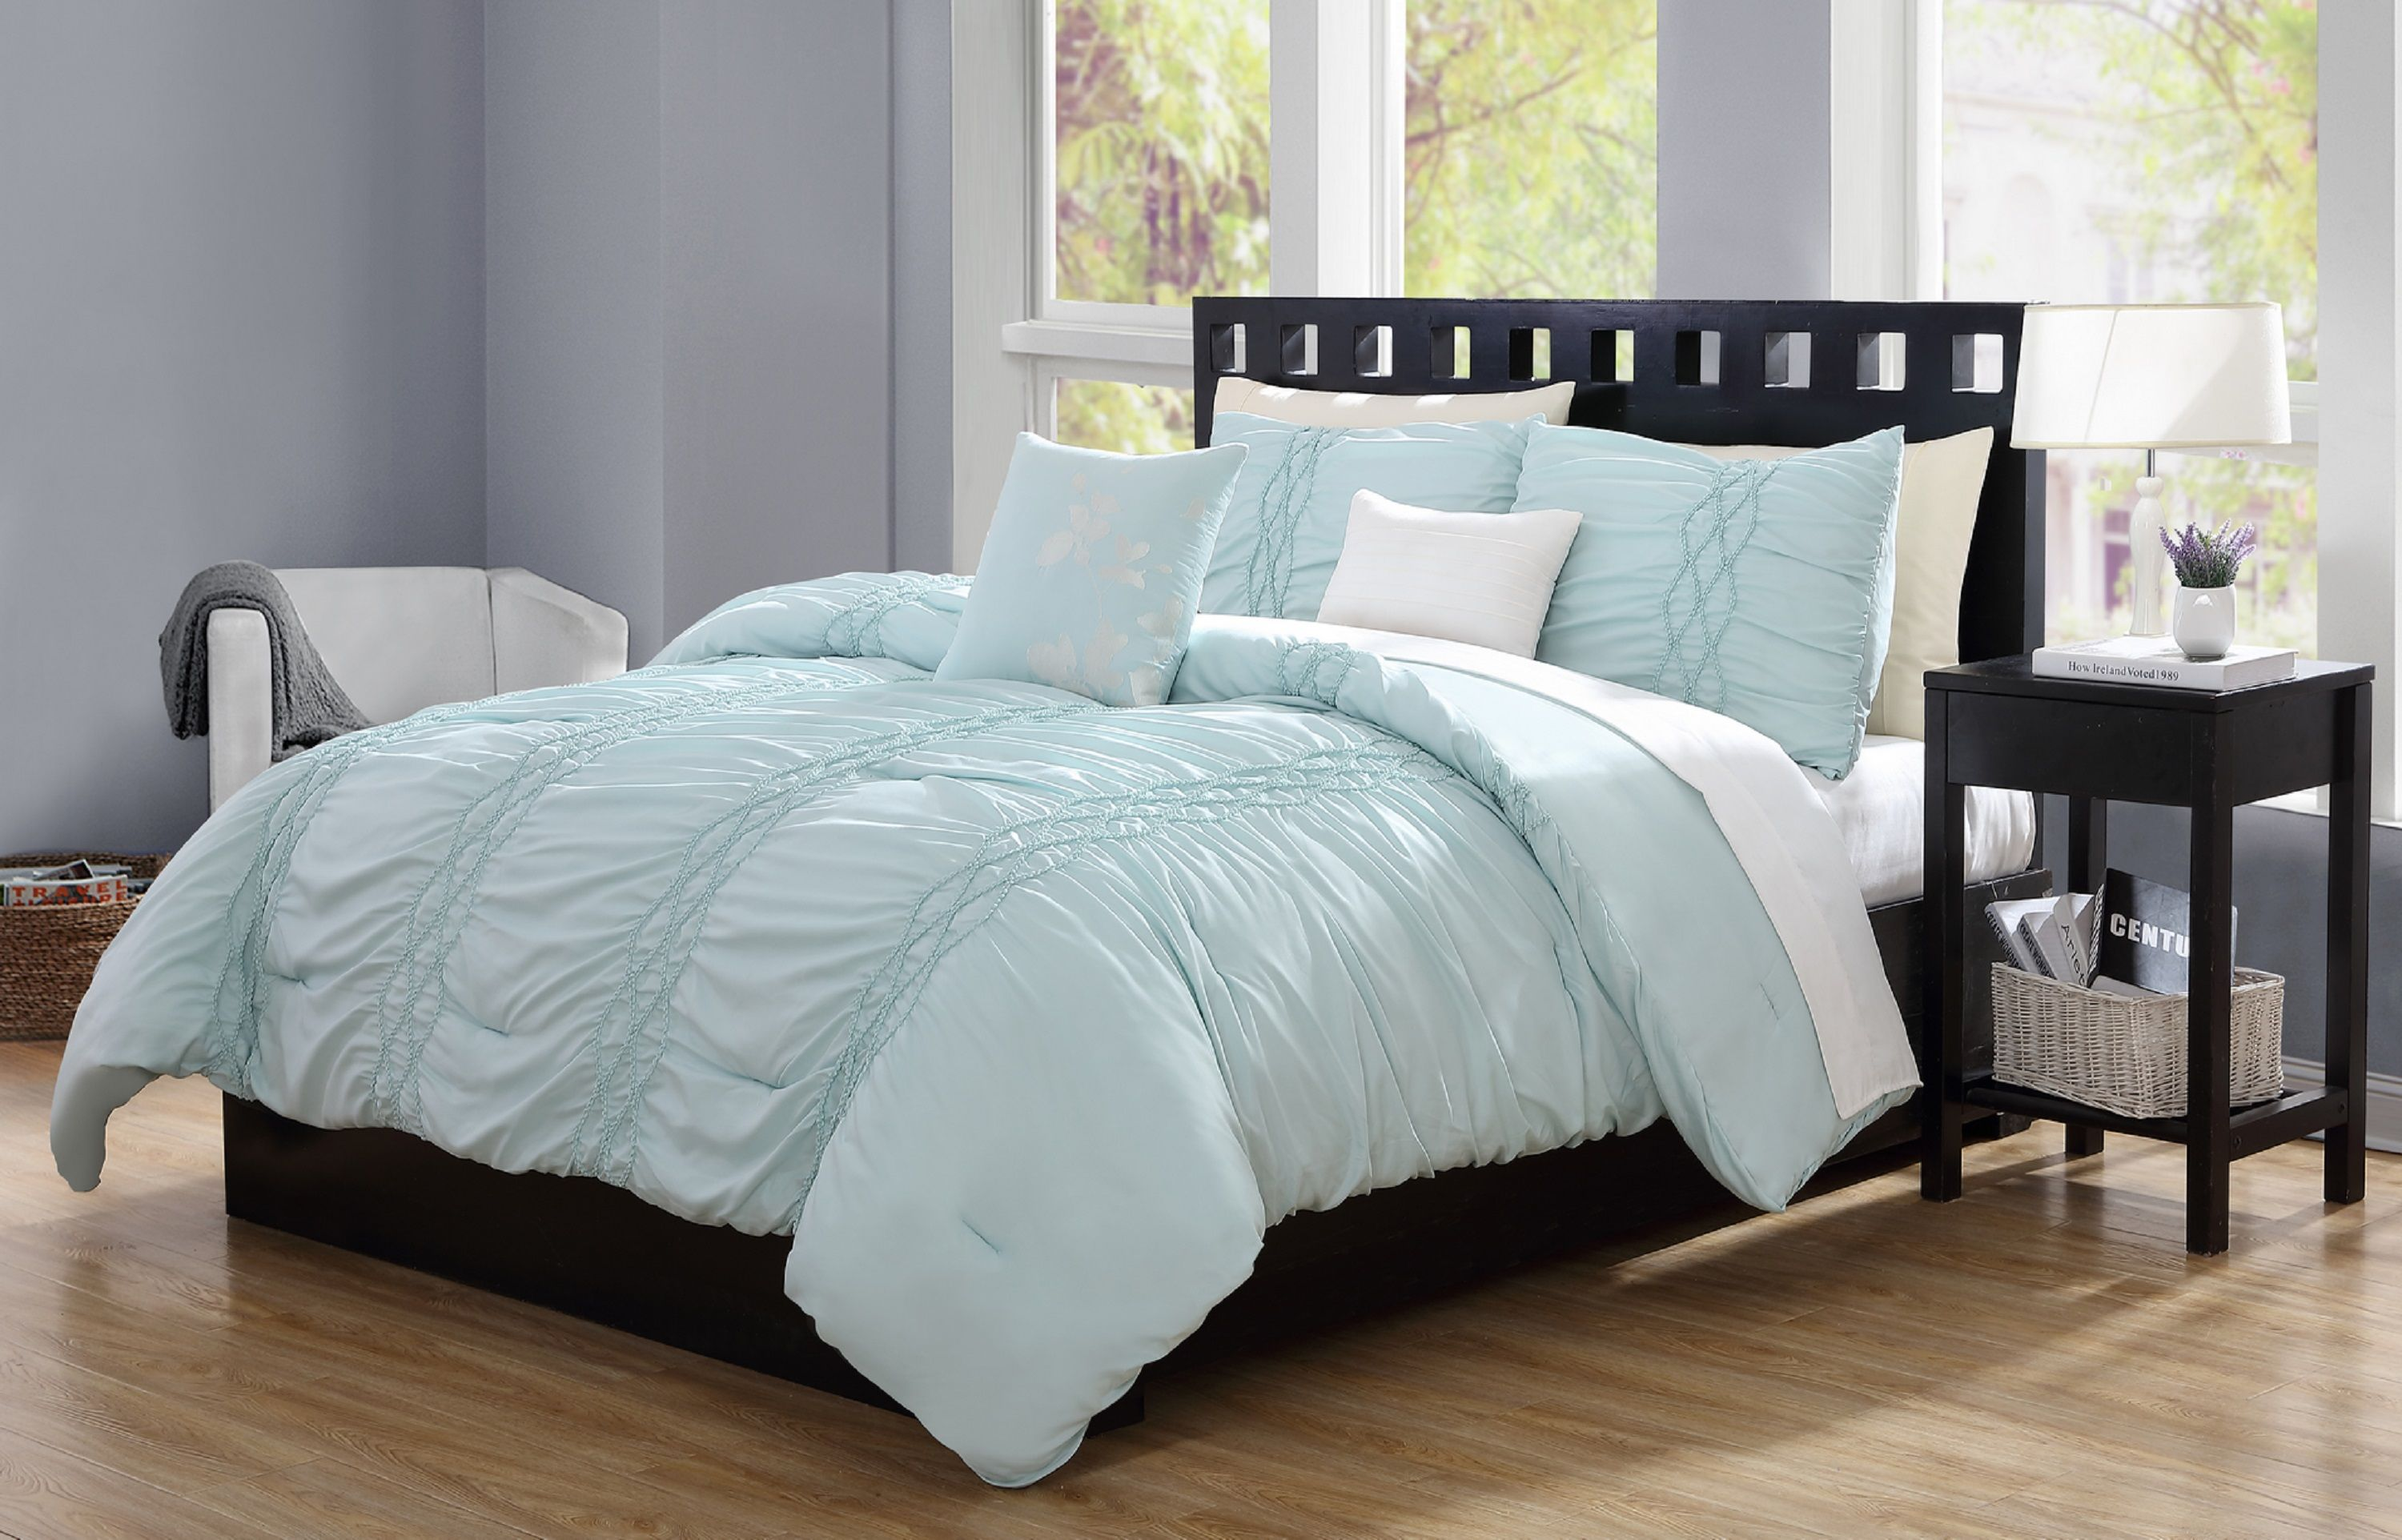 full ideas image bedroom bedding hemnes bed for frame contemporary black series beautiful